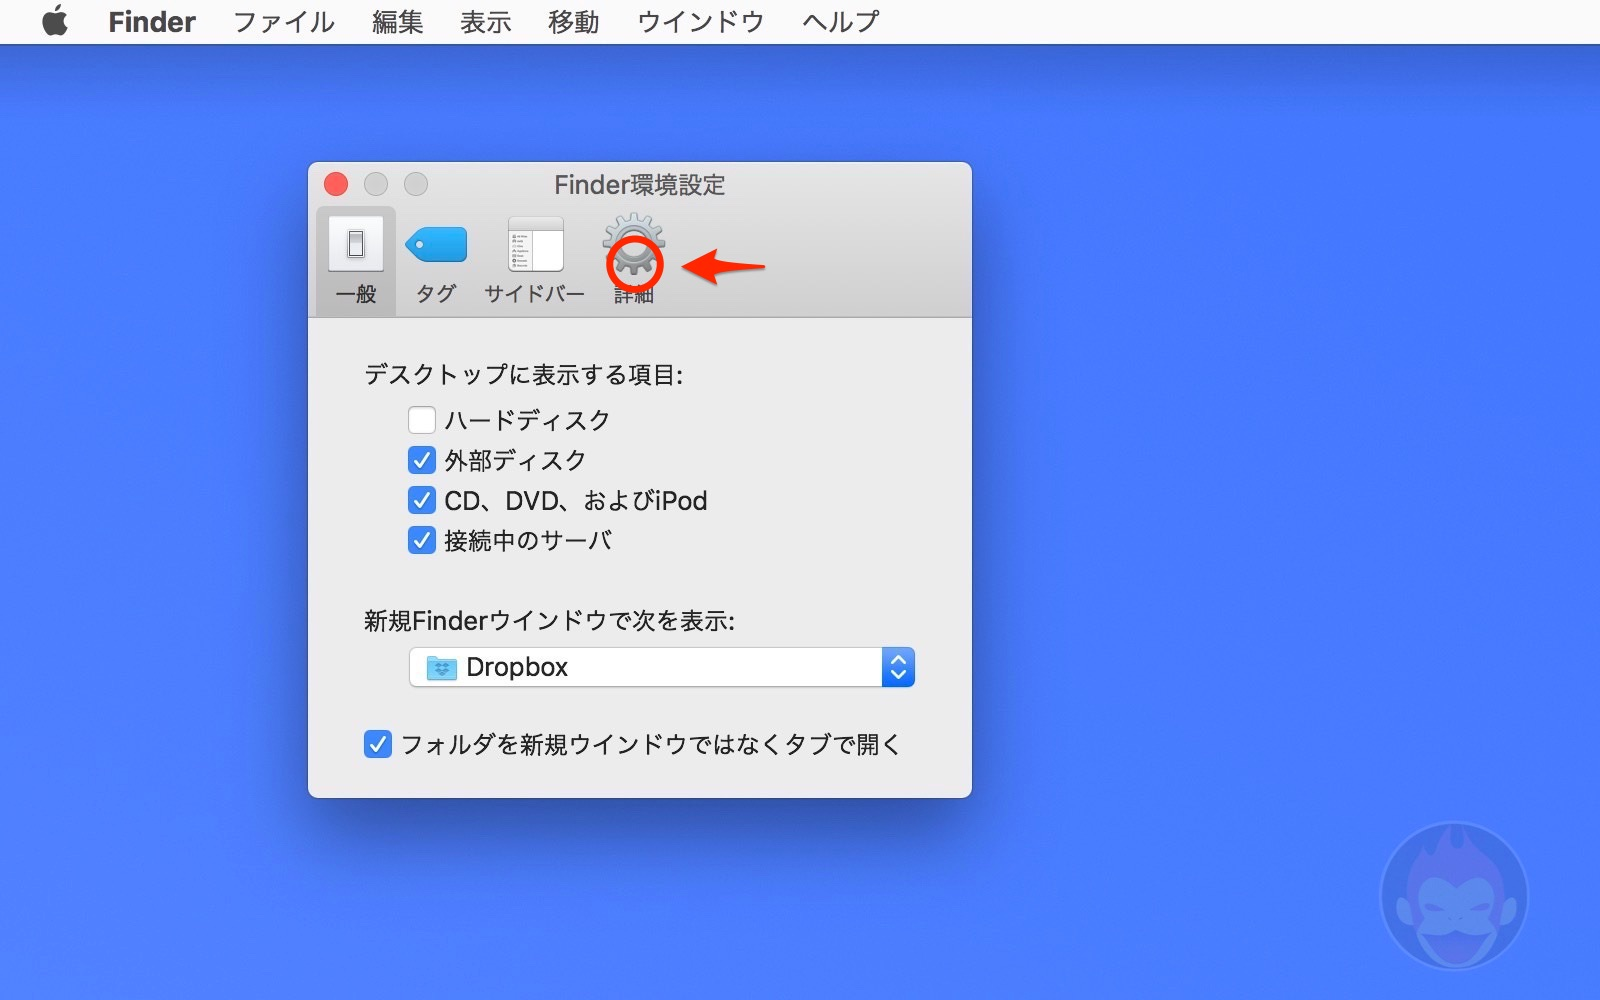 Showing-File-Extention-Types-on-Mac-02-2